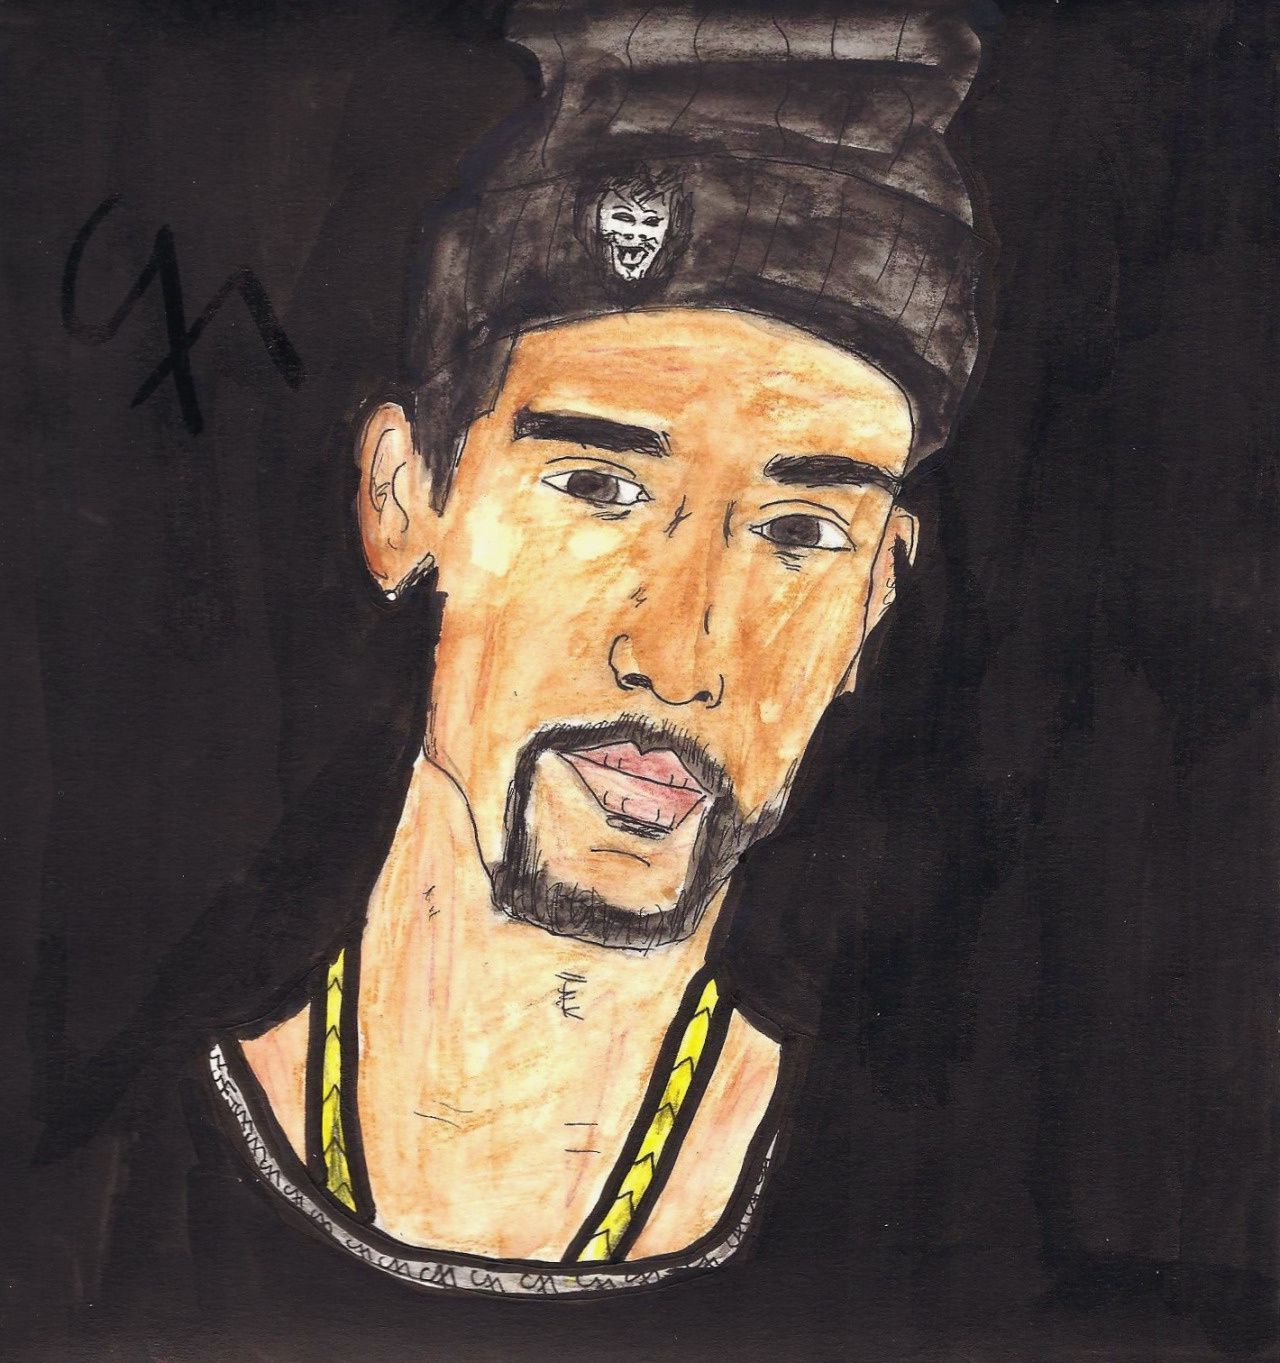 6) Big Sean Dark Sky Paradise